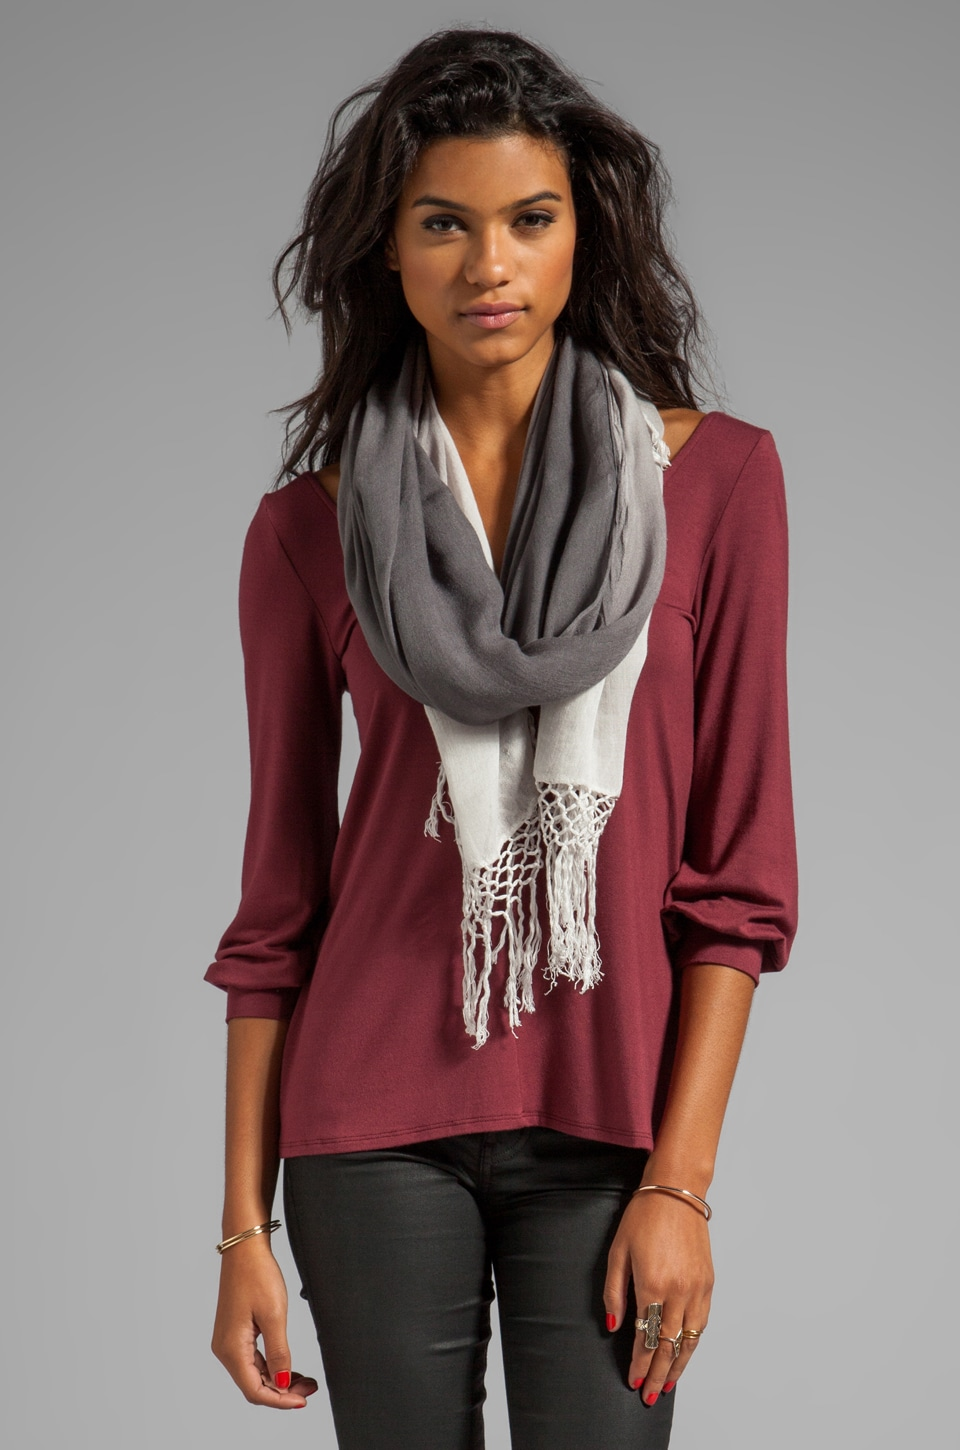 Gypsy 05 Foundation Ombre Scarf in Charcoal